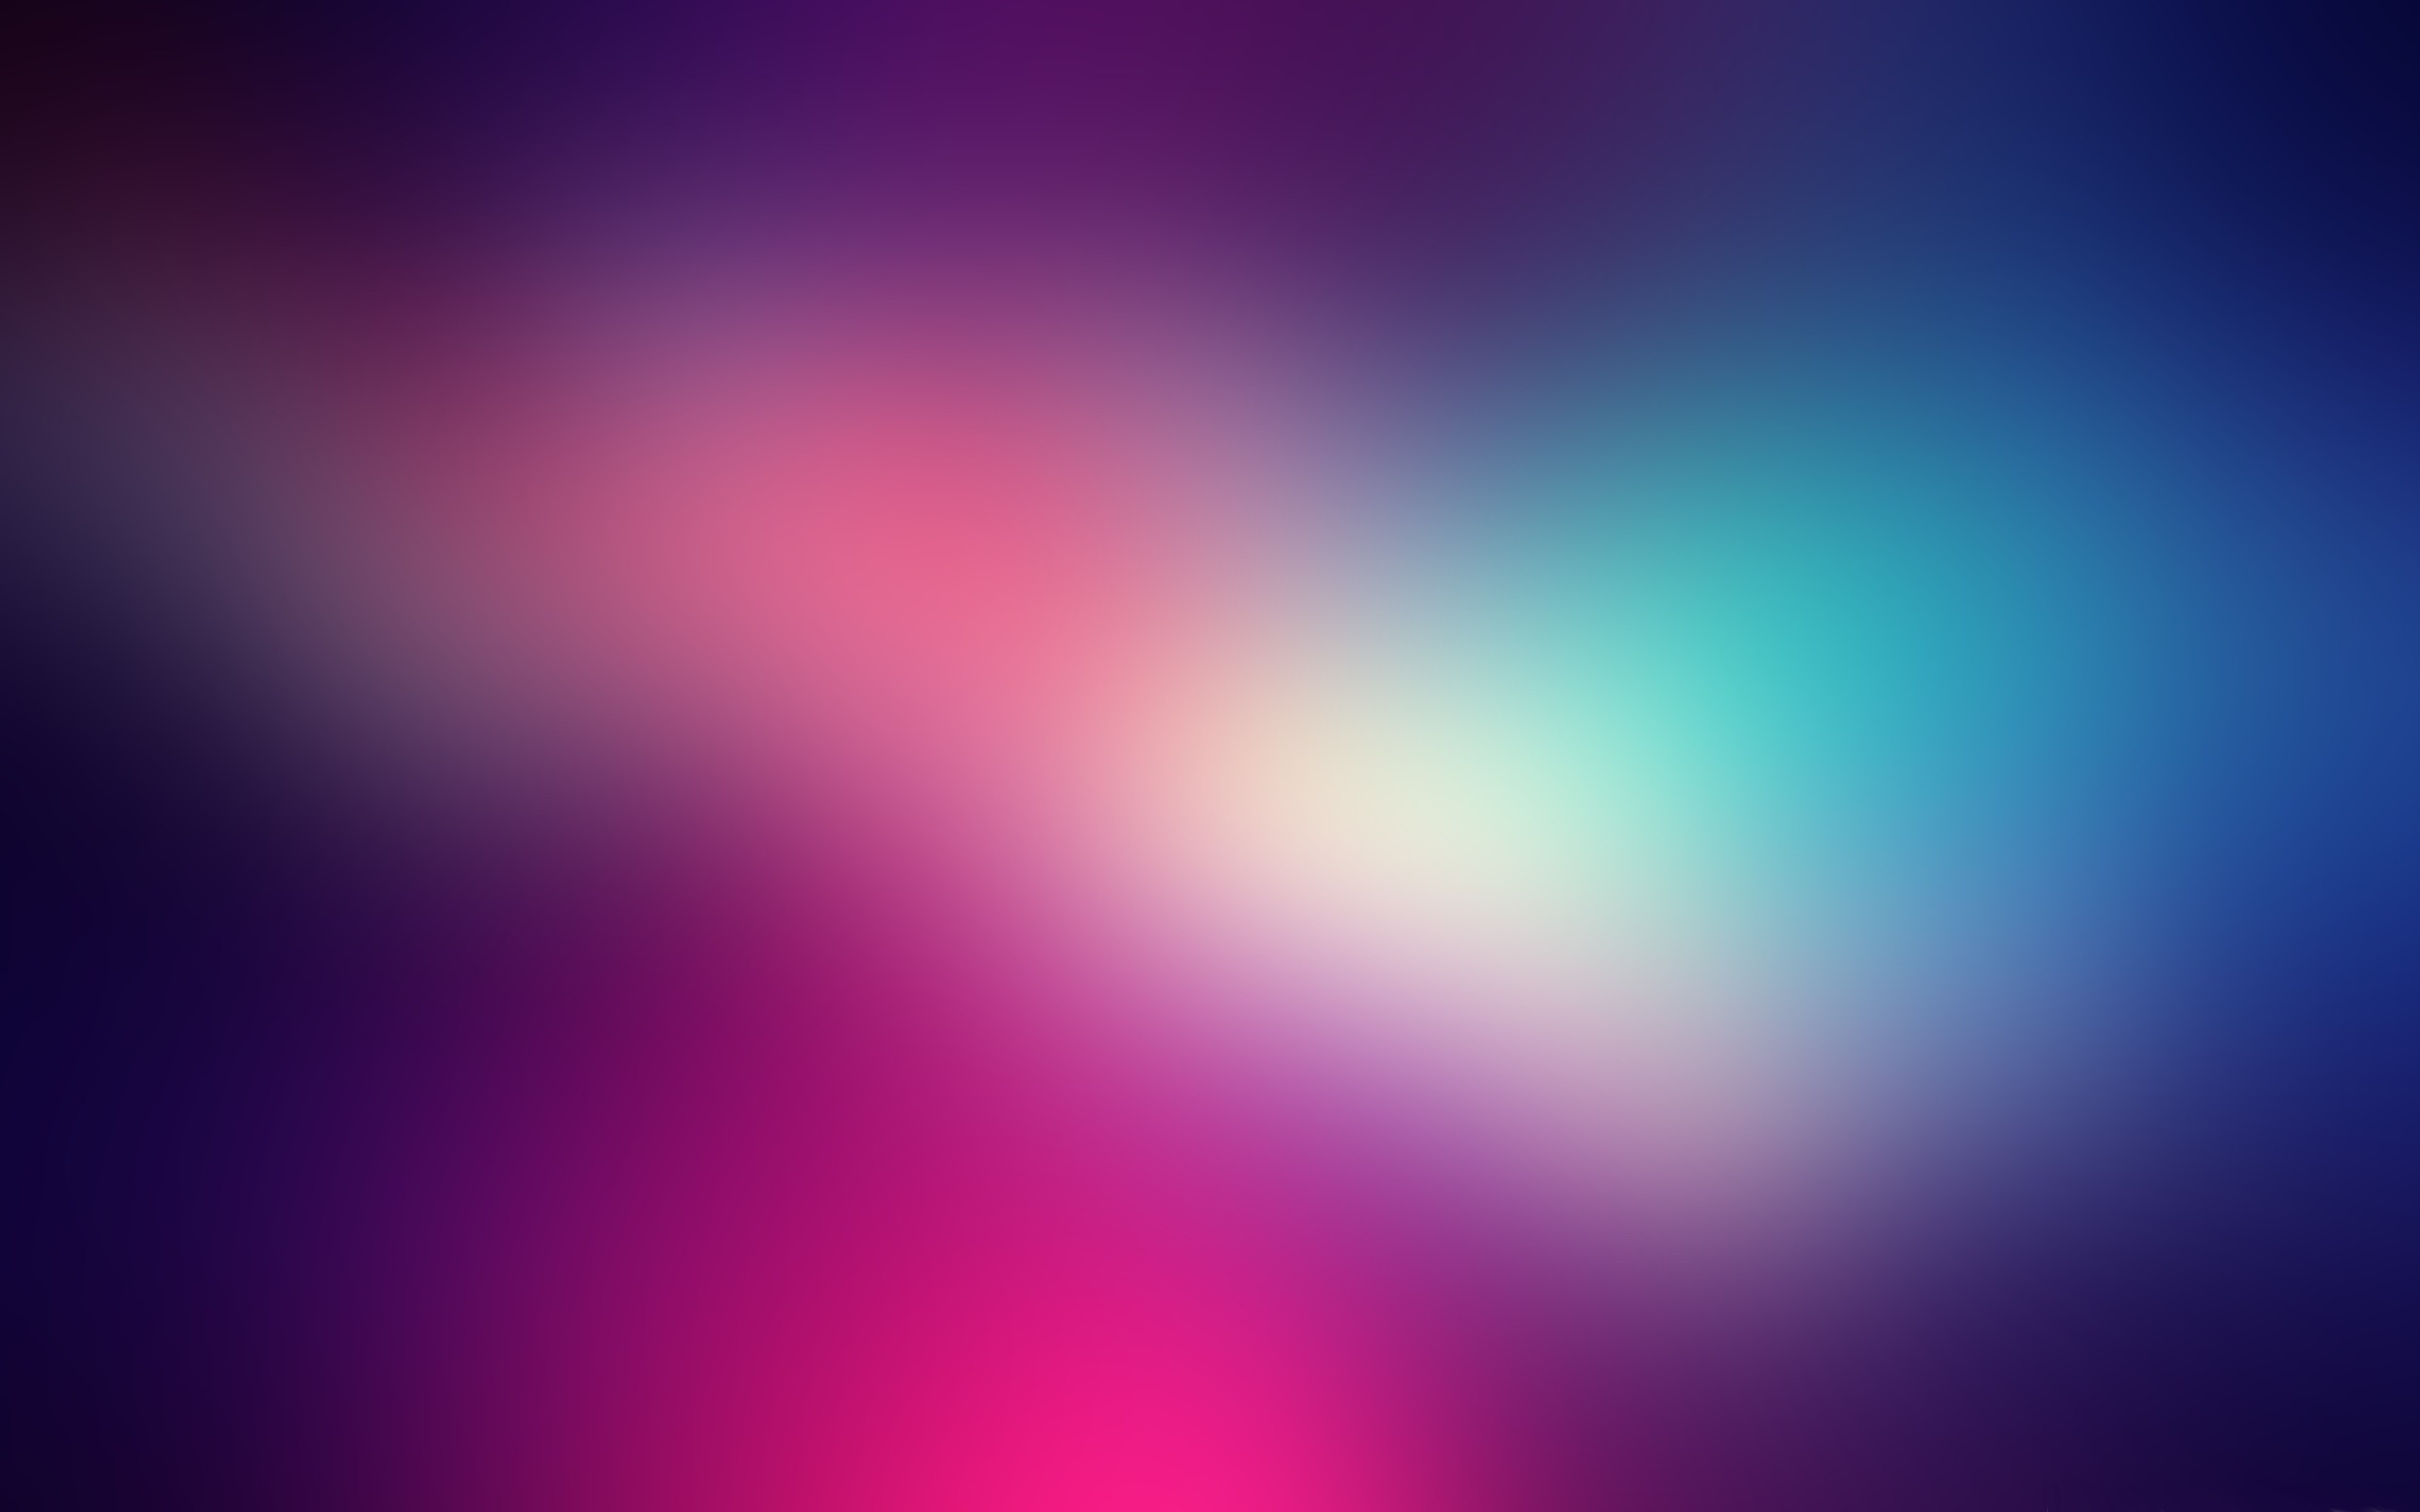 Colorful IOS Wallpaper